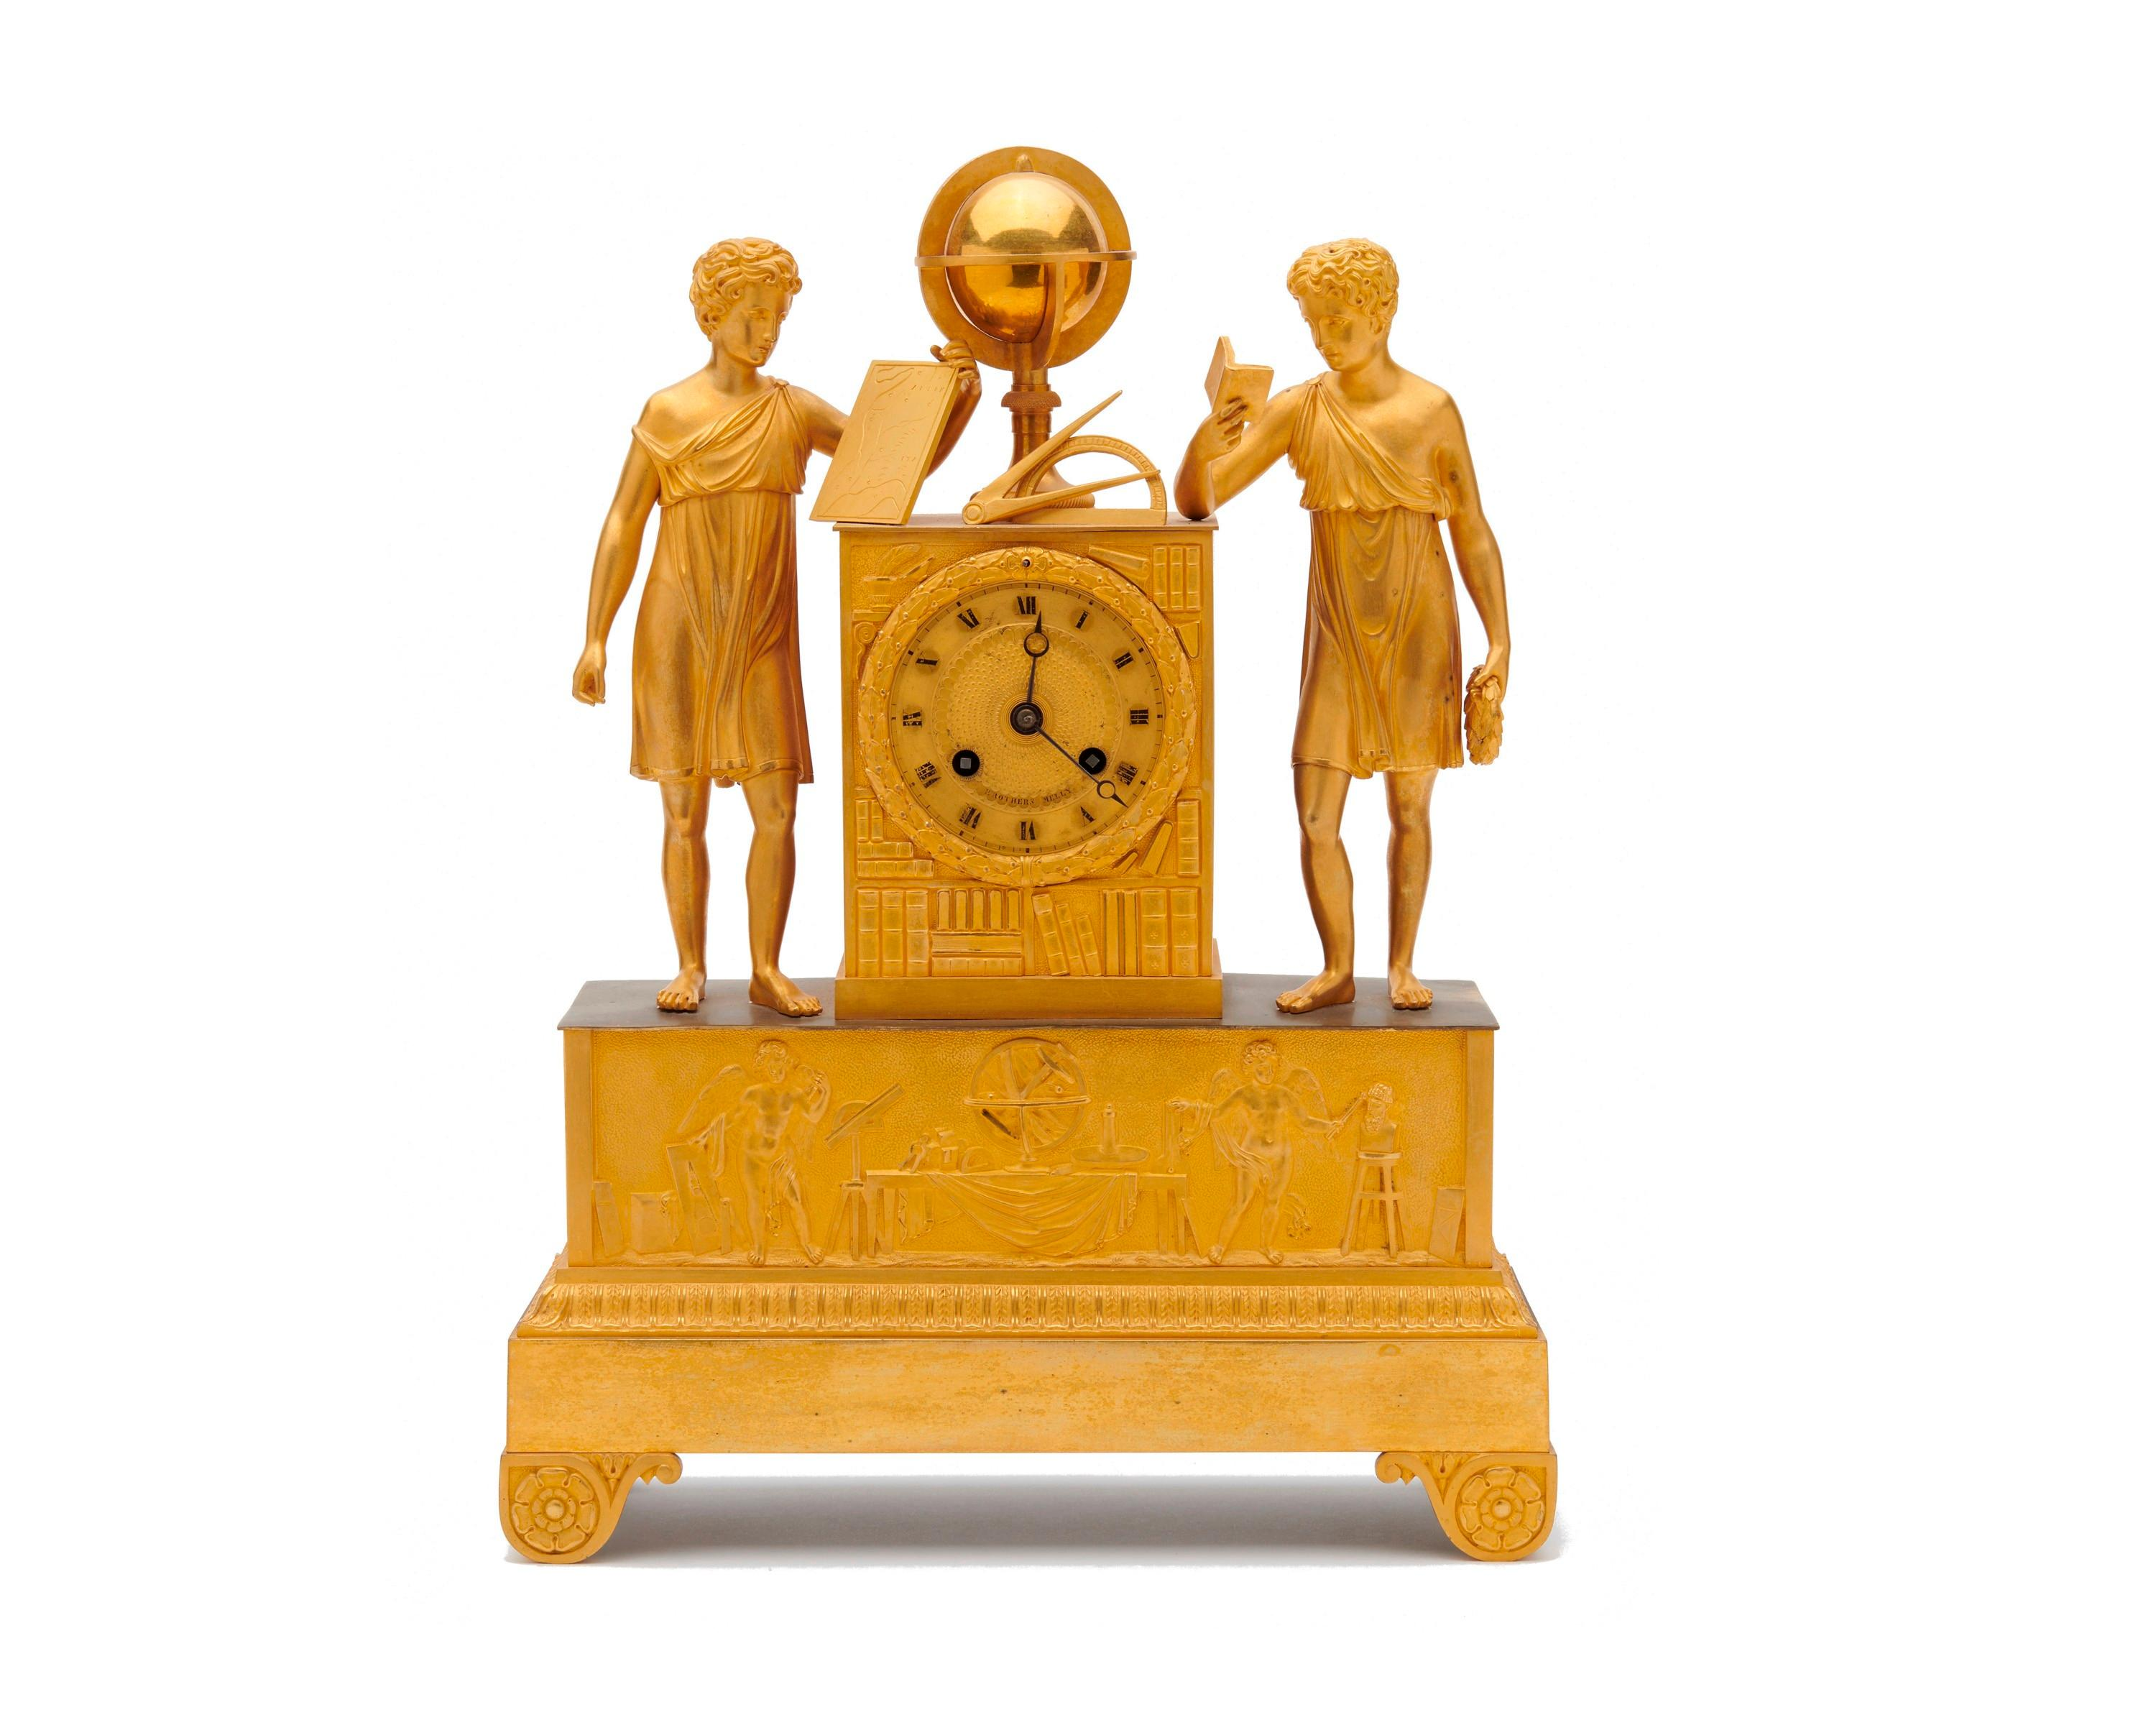 Neoclassical Gilt Bronze Figural Mantel Clock, Brothers Melly, 19th century